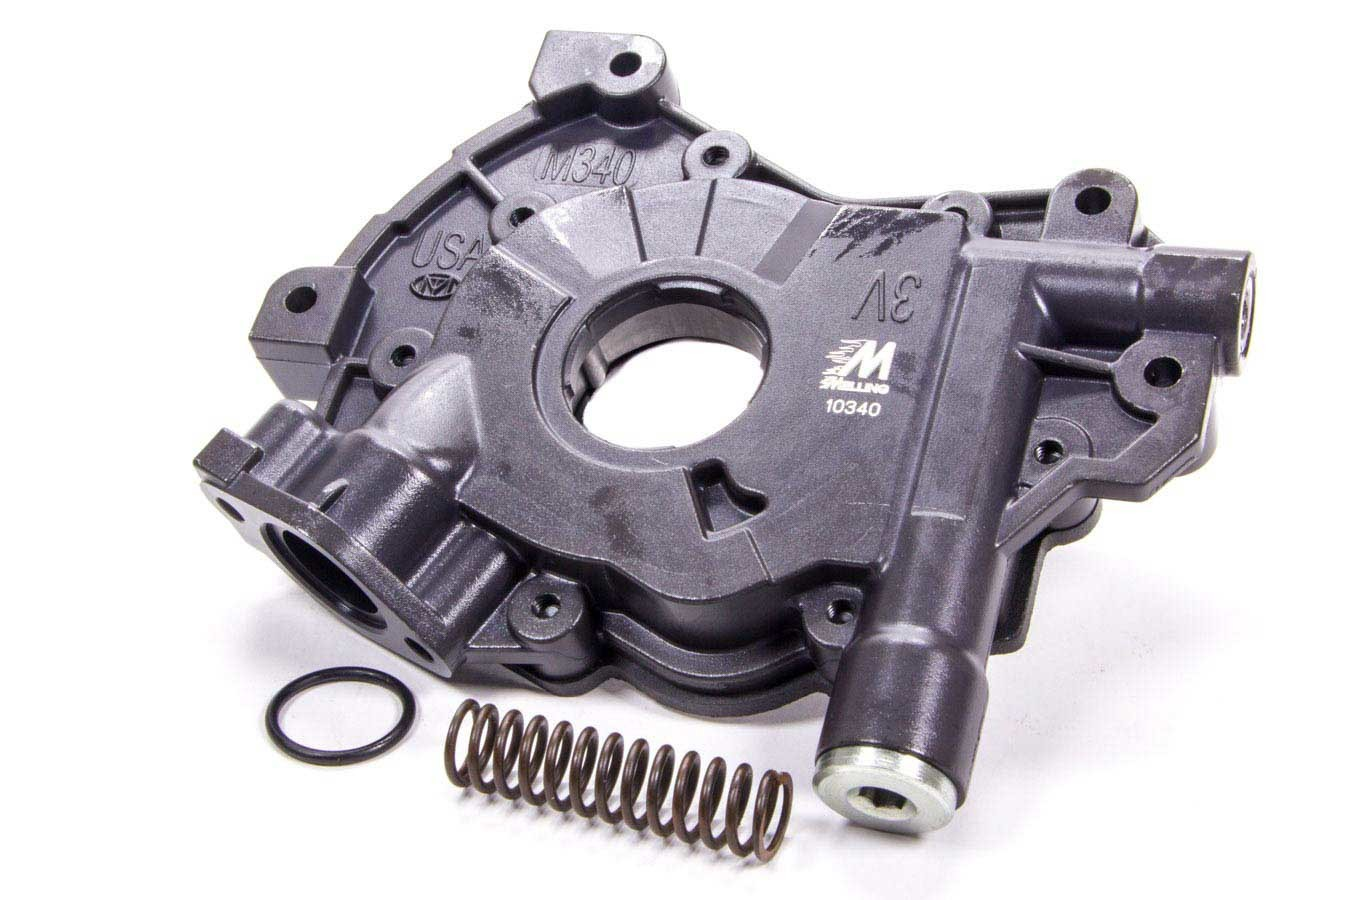 Melling 10340 Oil Pump, Wet Sump, Internal, Standard Volume, High Pressure, 15/16 in Inlet, Ford Modular, Each